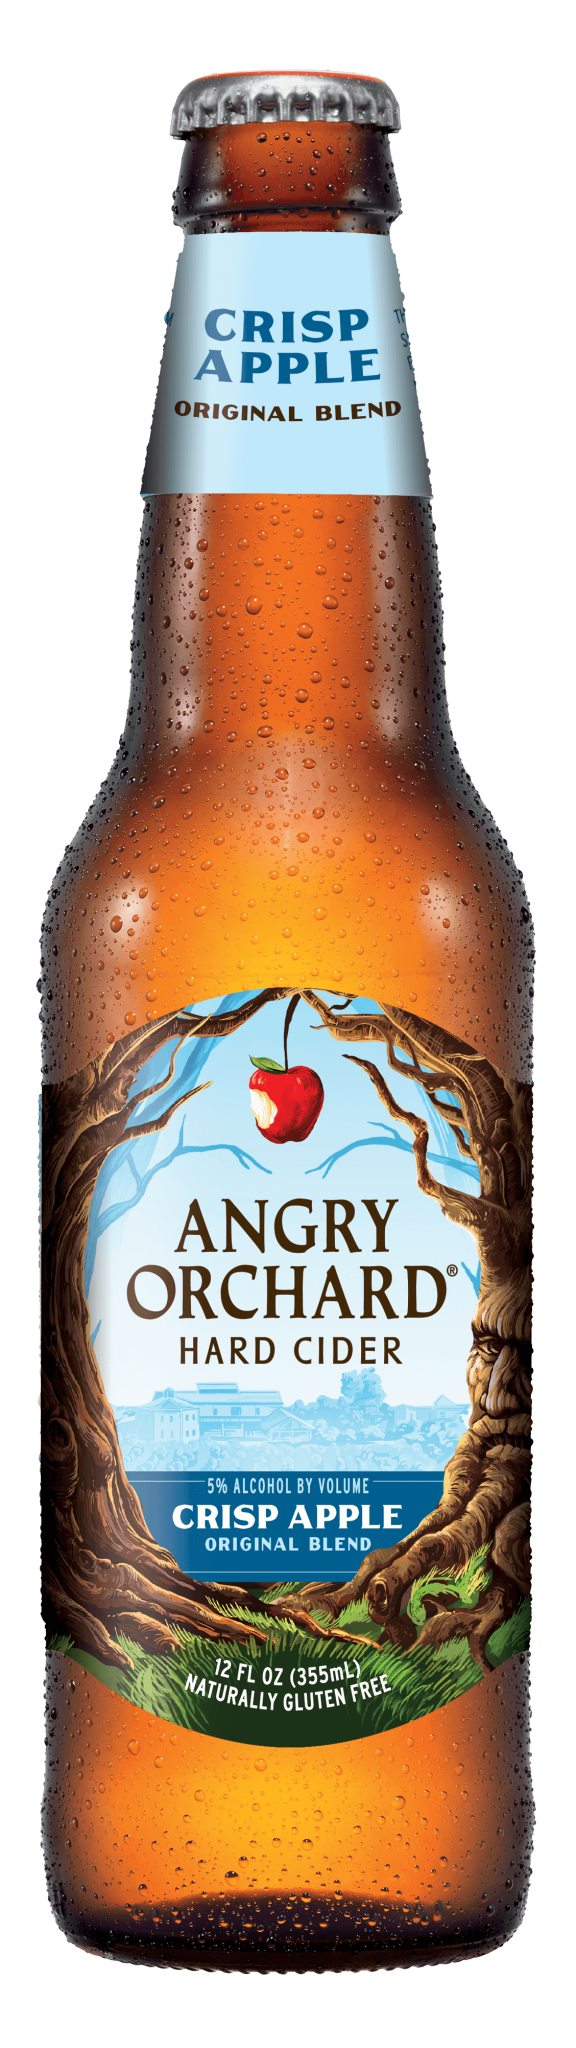 Angry Orchard Hard Cider ANGRY ORCHARD CRISP APPLE CIDER 12 PK CAN